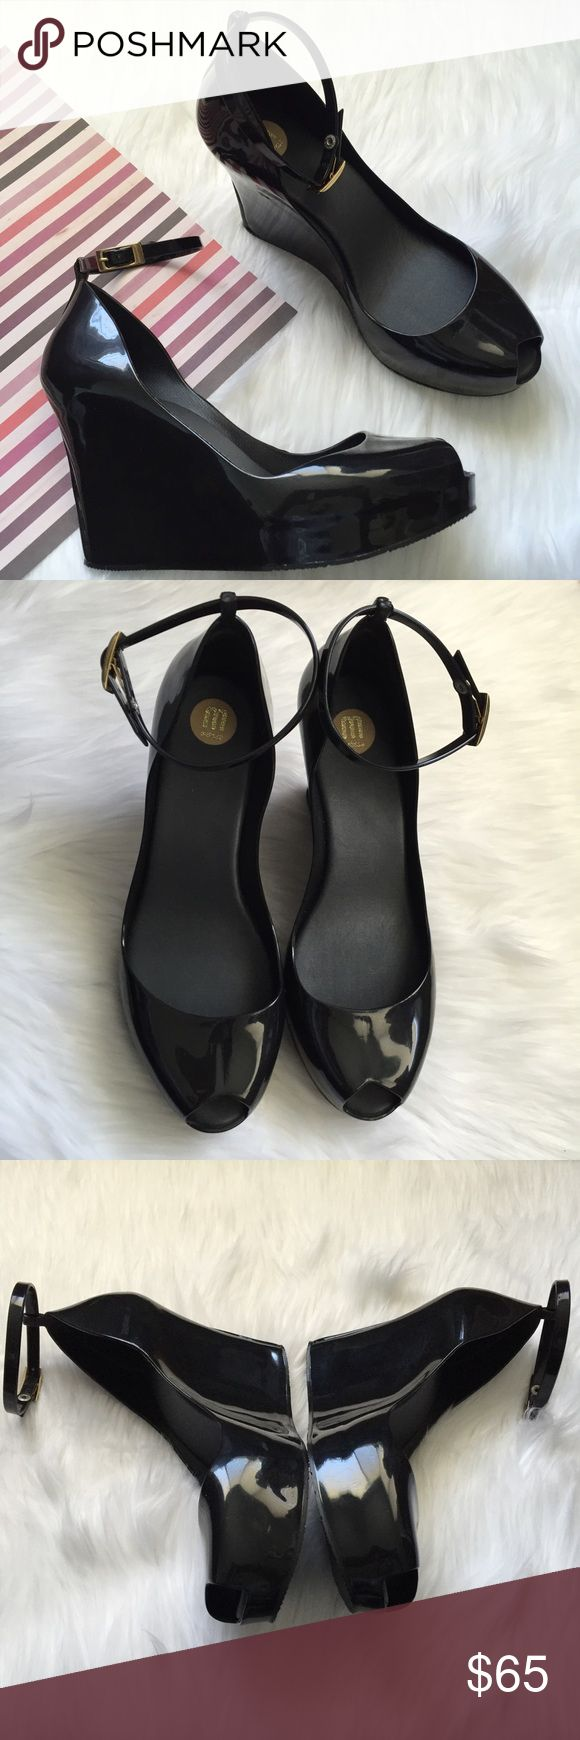 "(NEW) Melissa Patchuli Jelly Wedge NWOB, Women's peep toe wedge, with adjustable ankle strap and gold buckle closure, Synthetic upper, Rubber Sole, approx 3.25"" heel and .75"" platform. Made in Brazil. Black Color. Please feel free to ask questions. No trades. Melissa Shoes Wedges"